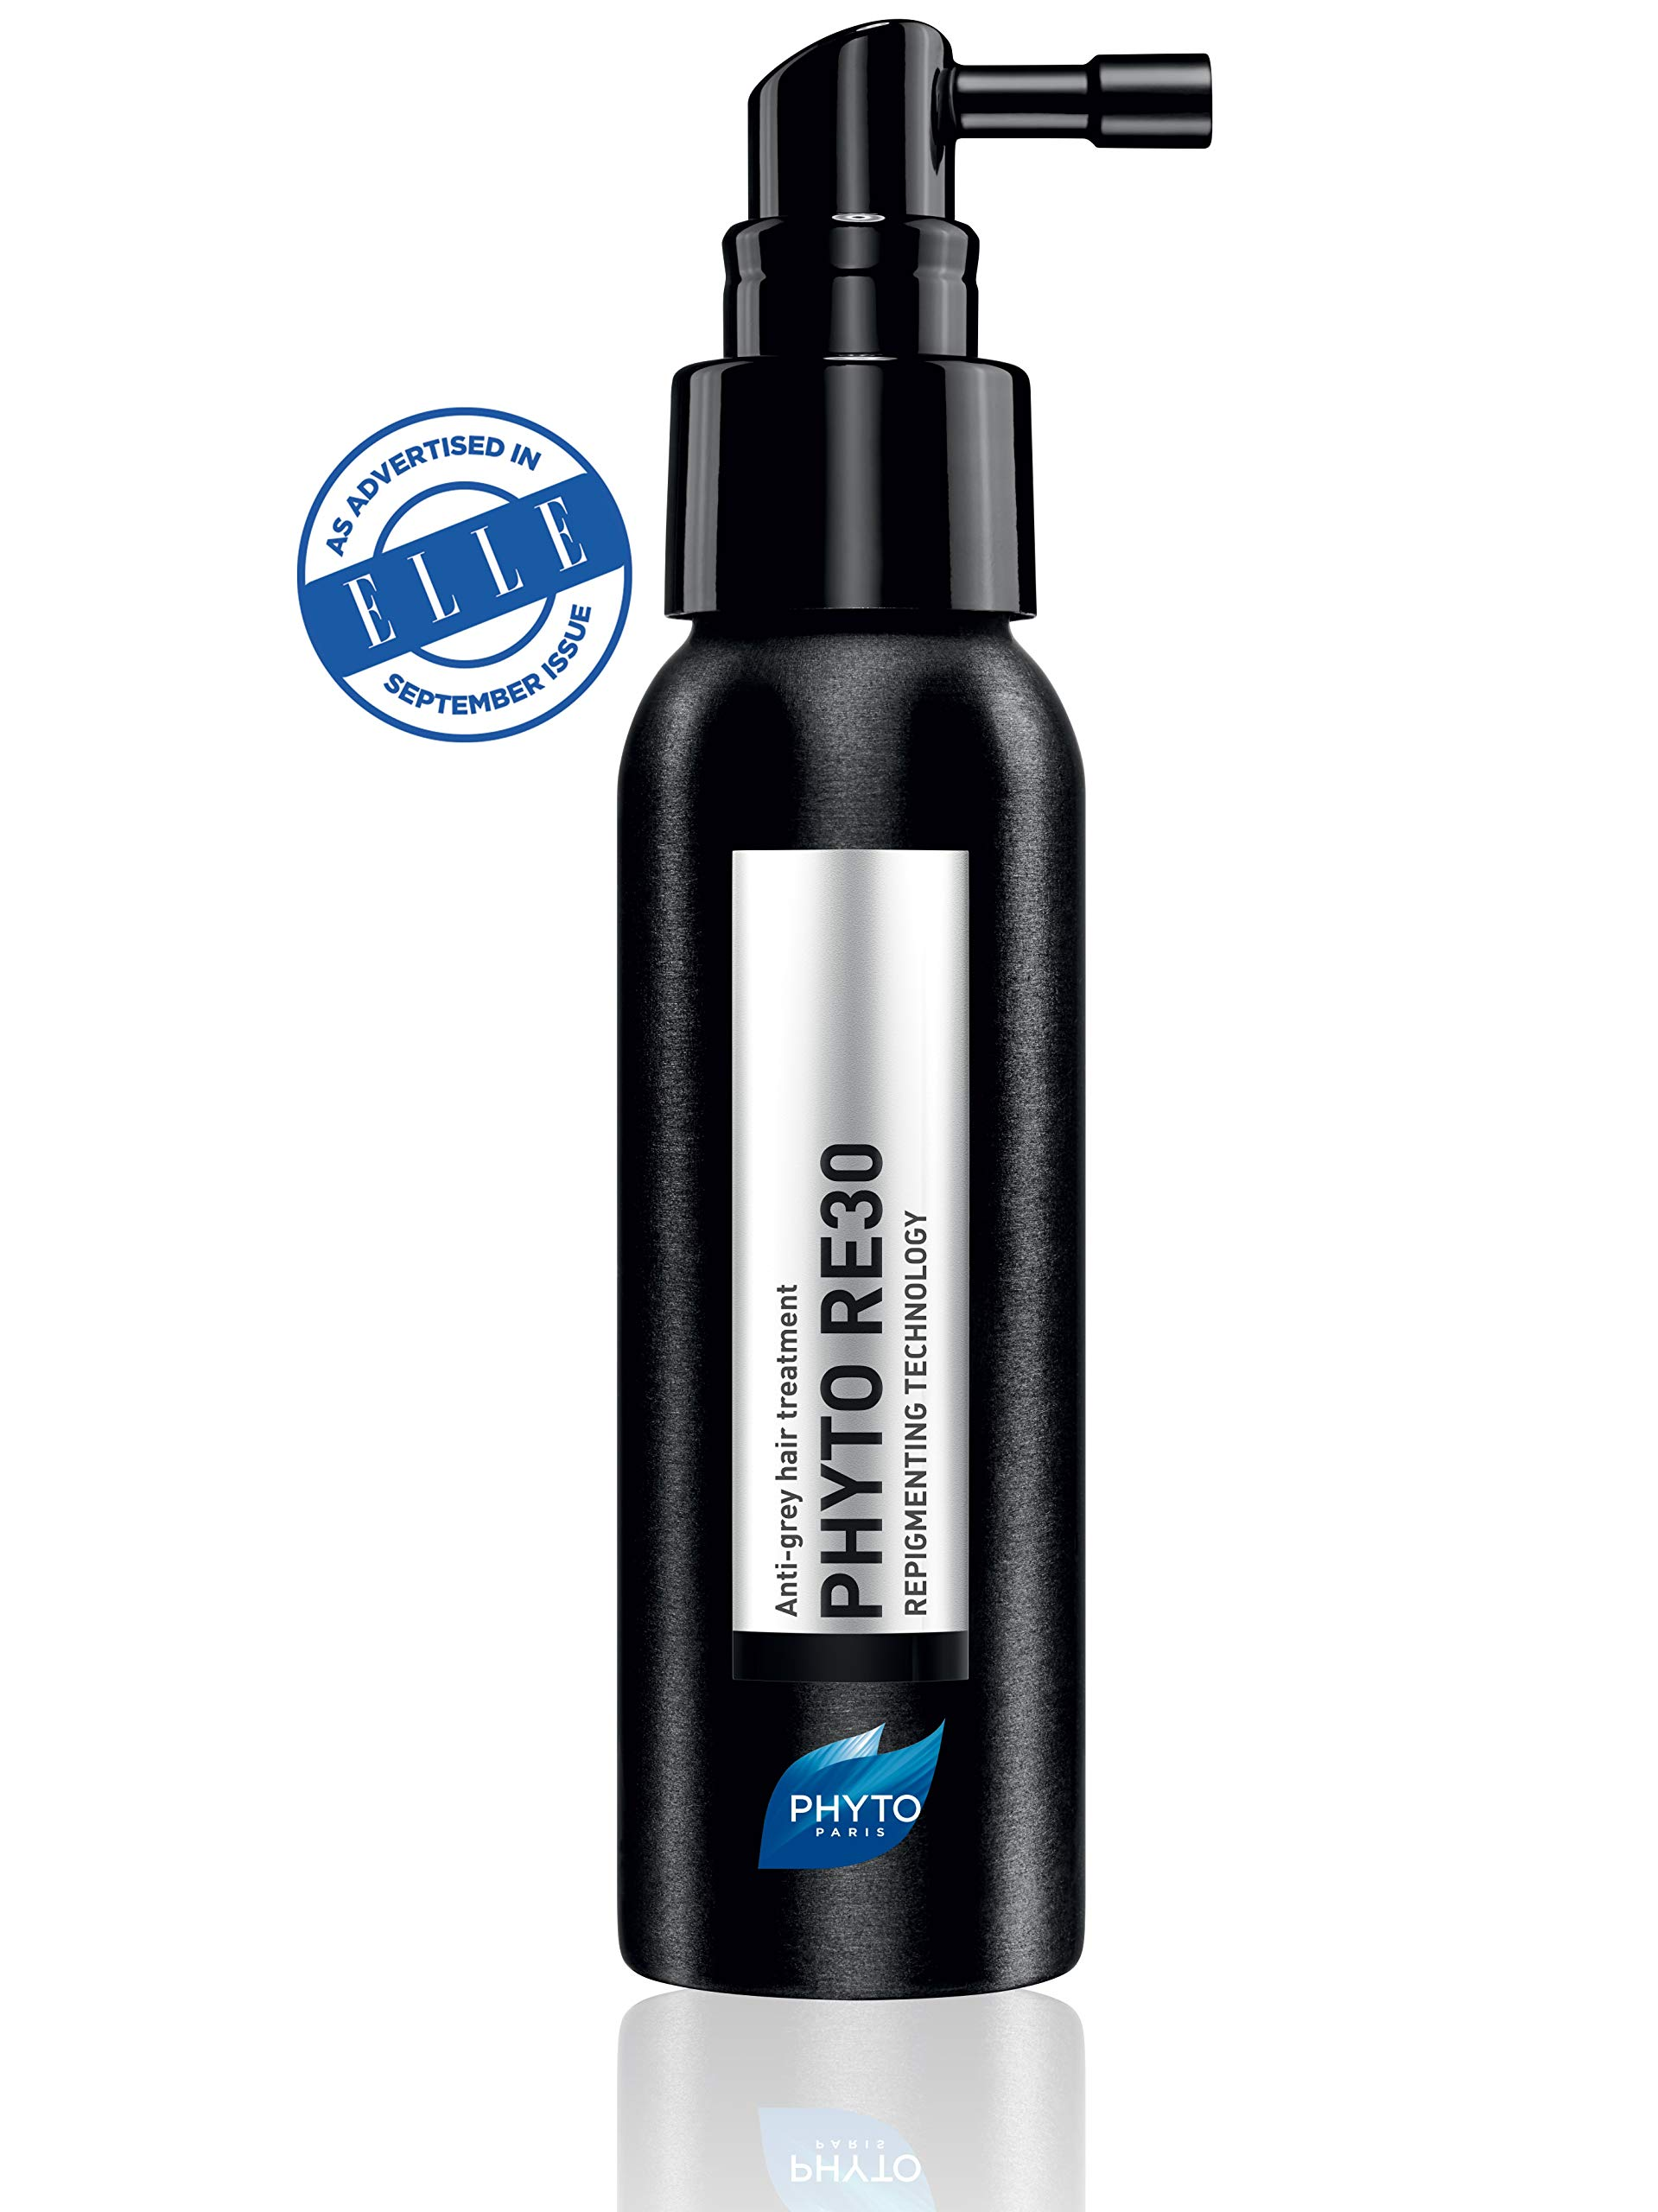 PHYTO RE30 Anti-Grey Hair Treatment Spray | Delays & Reverses Grey Hair| No Coloring Pigments, Repigments at the Root, Boosts Melanin, Stronger & Softer Hair | Keratin | Sulfate Free, Paraben Free